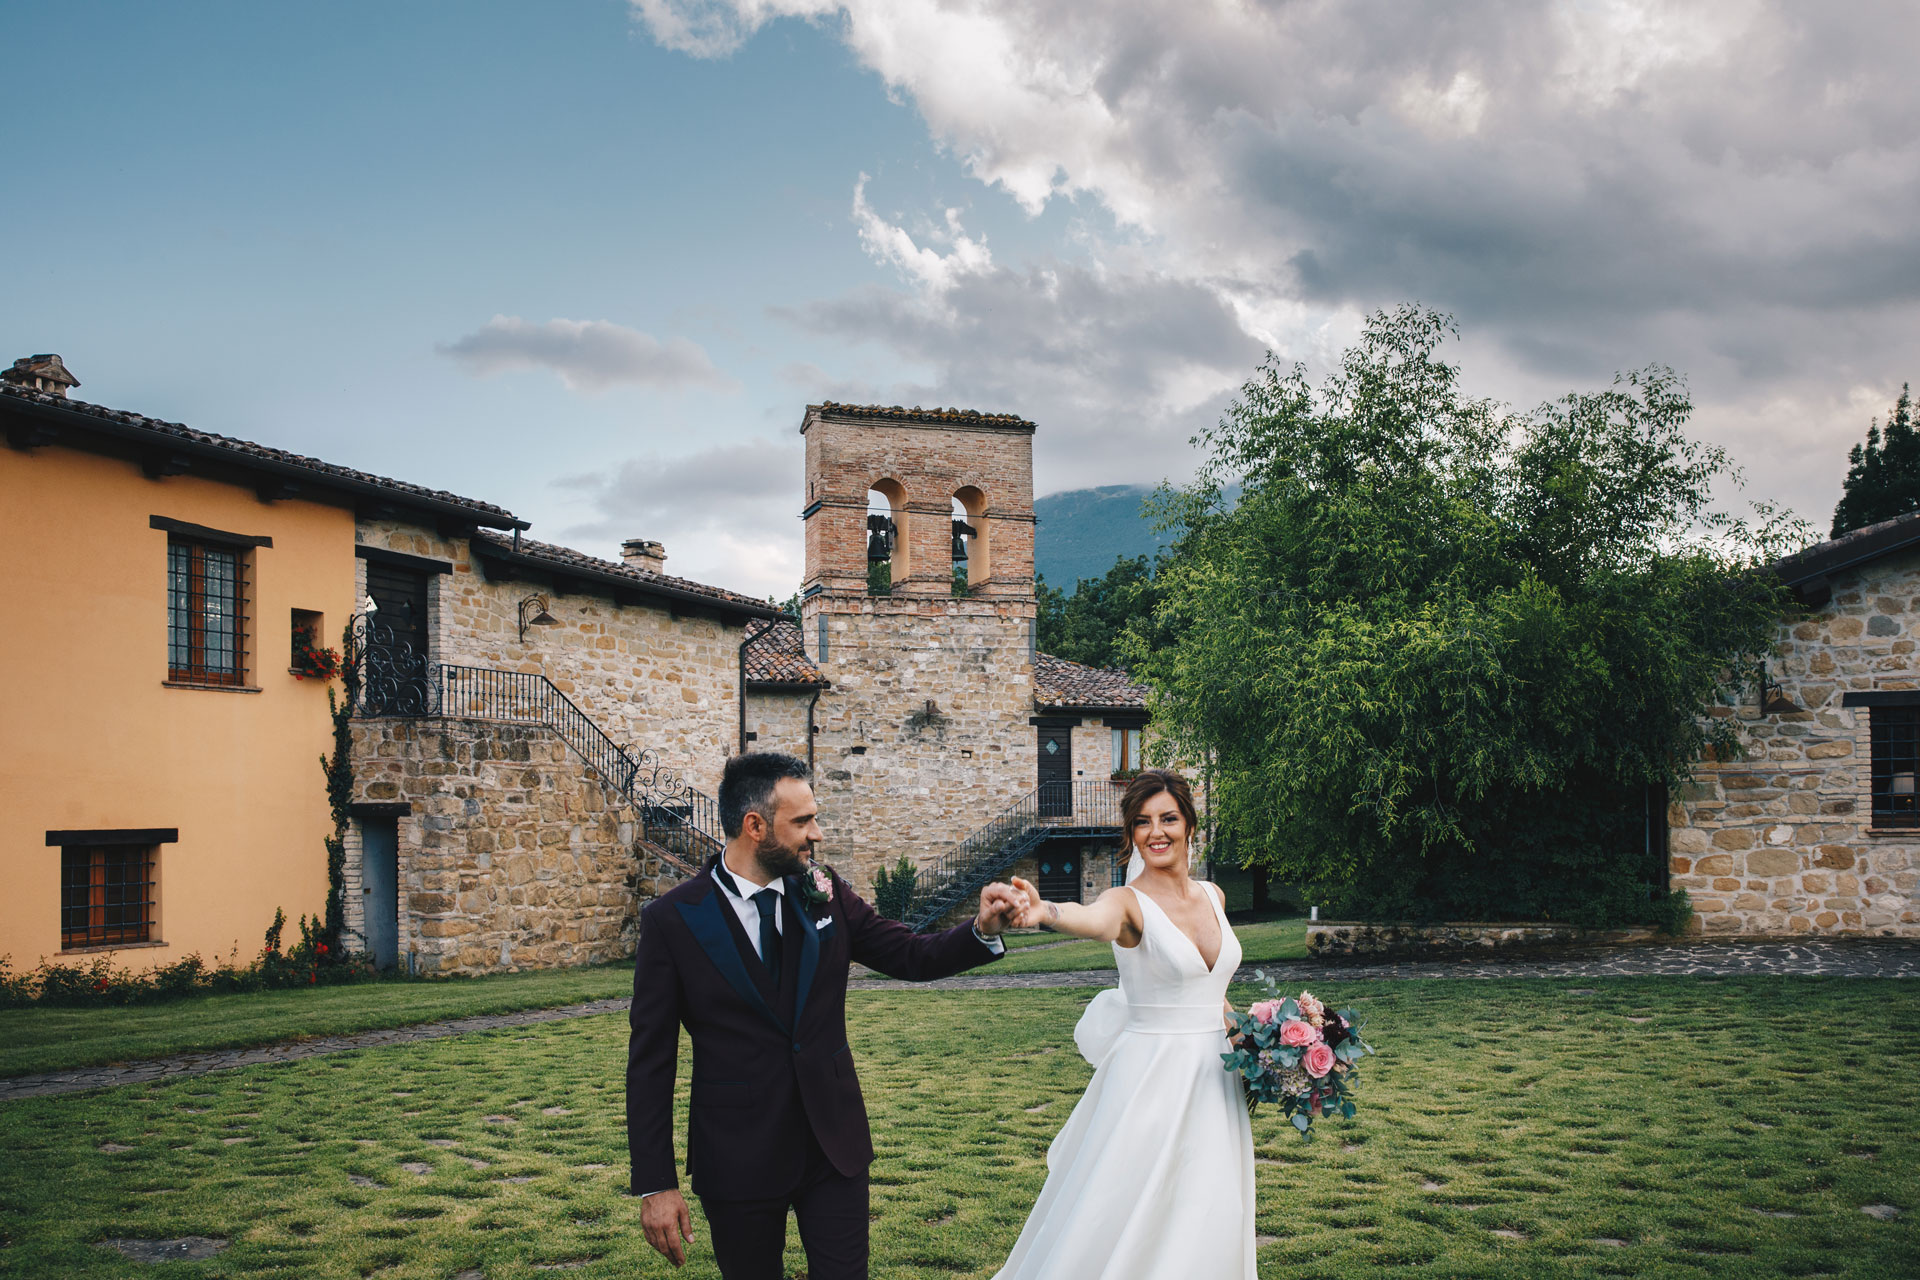 Destination Wedding a Borgo Lanciano